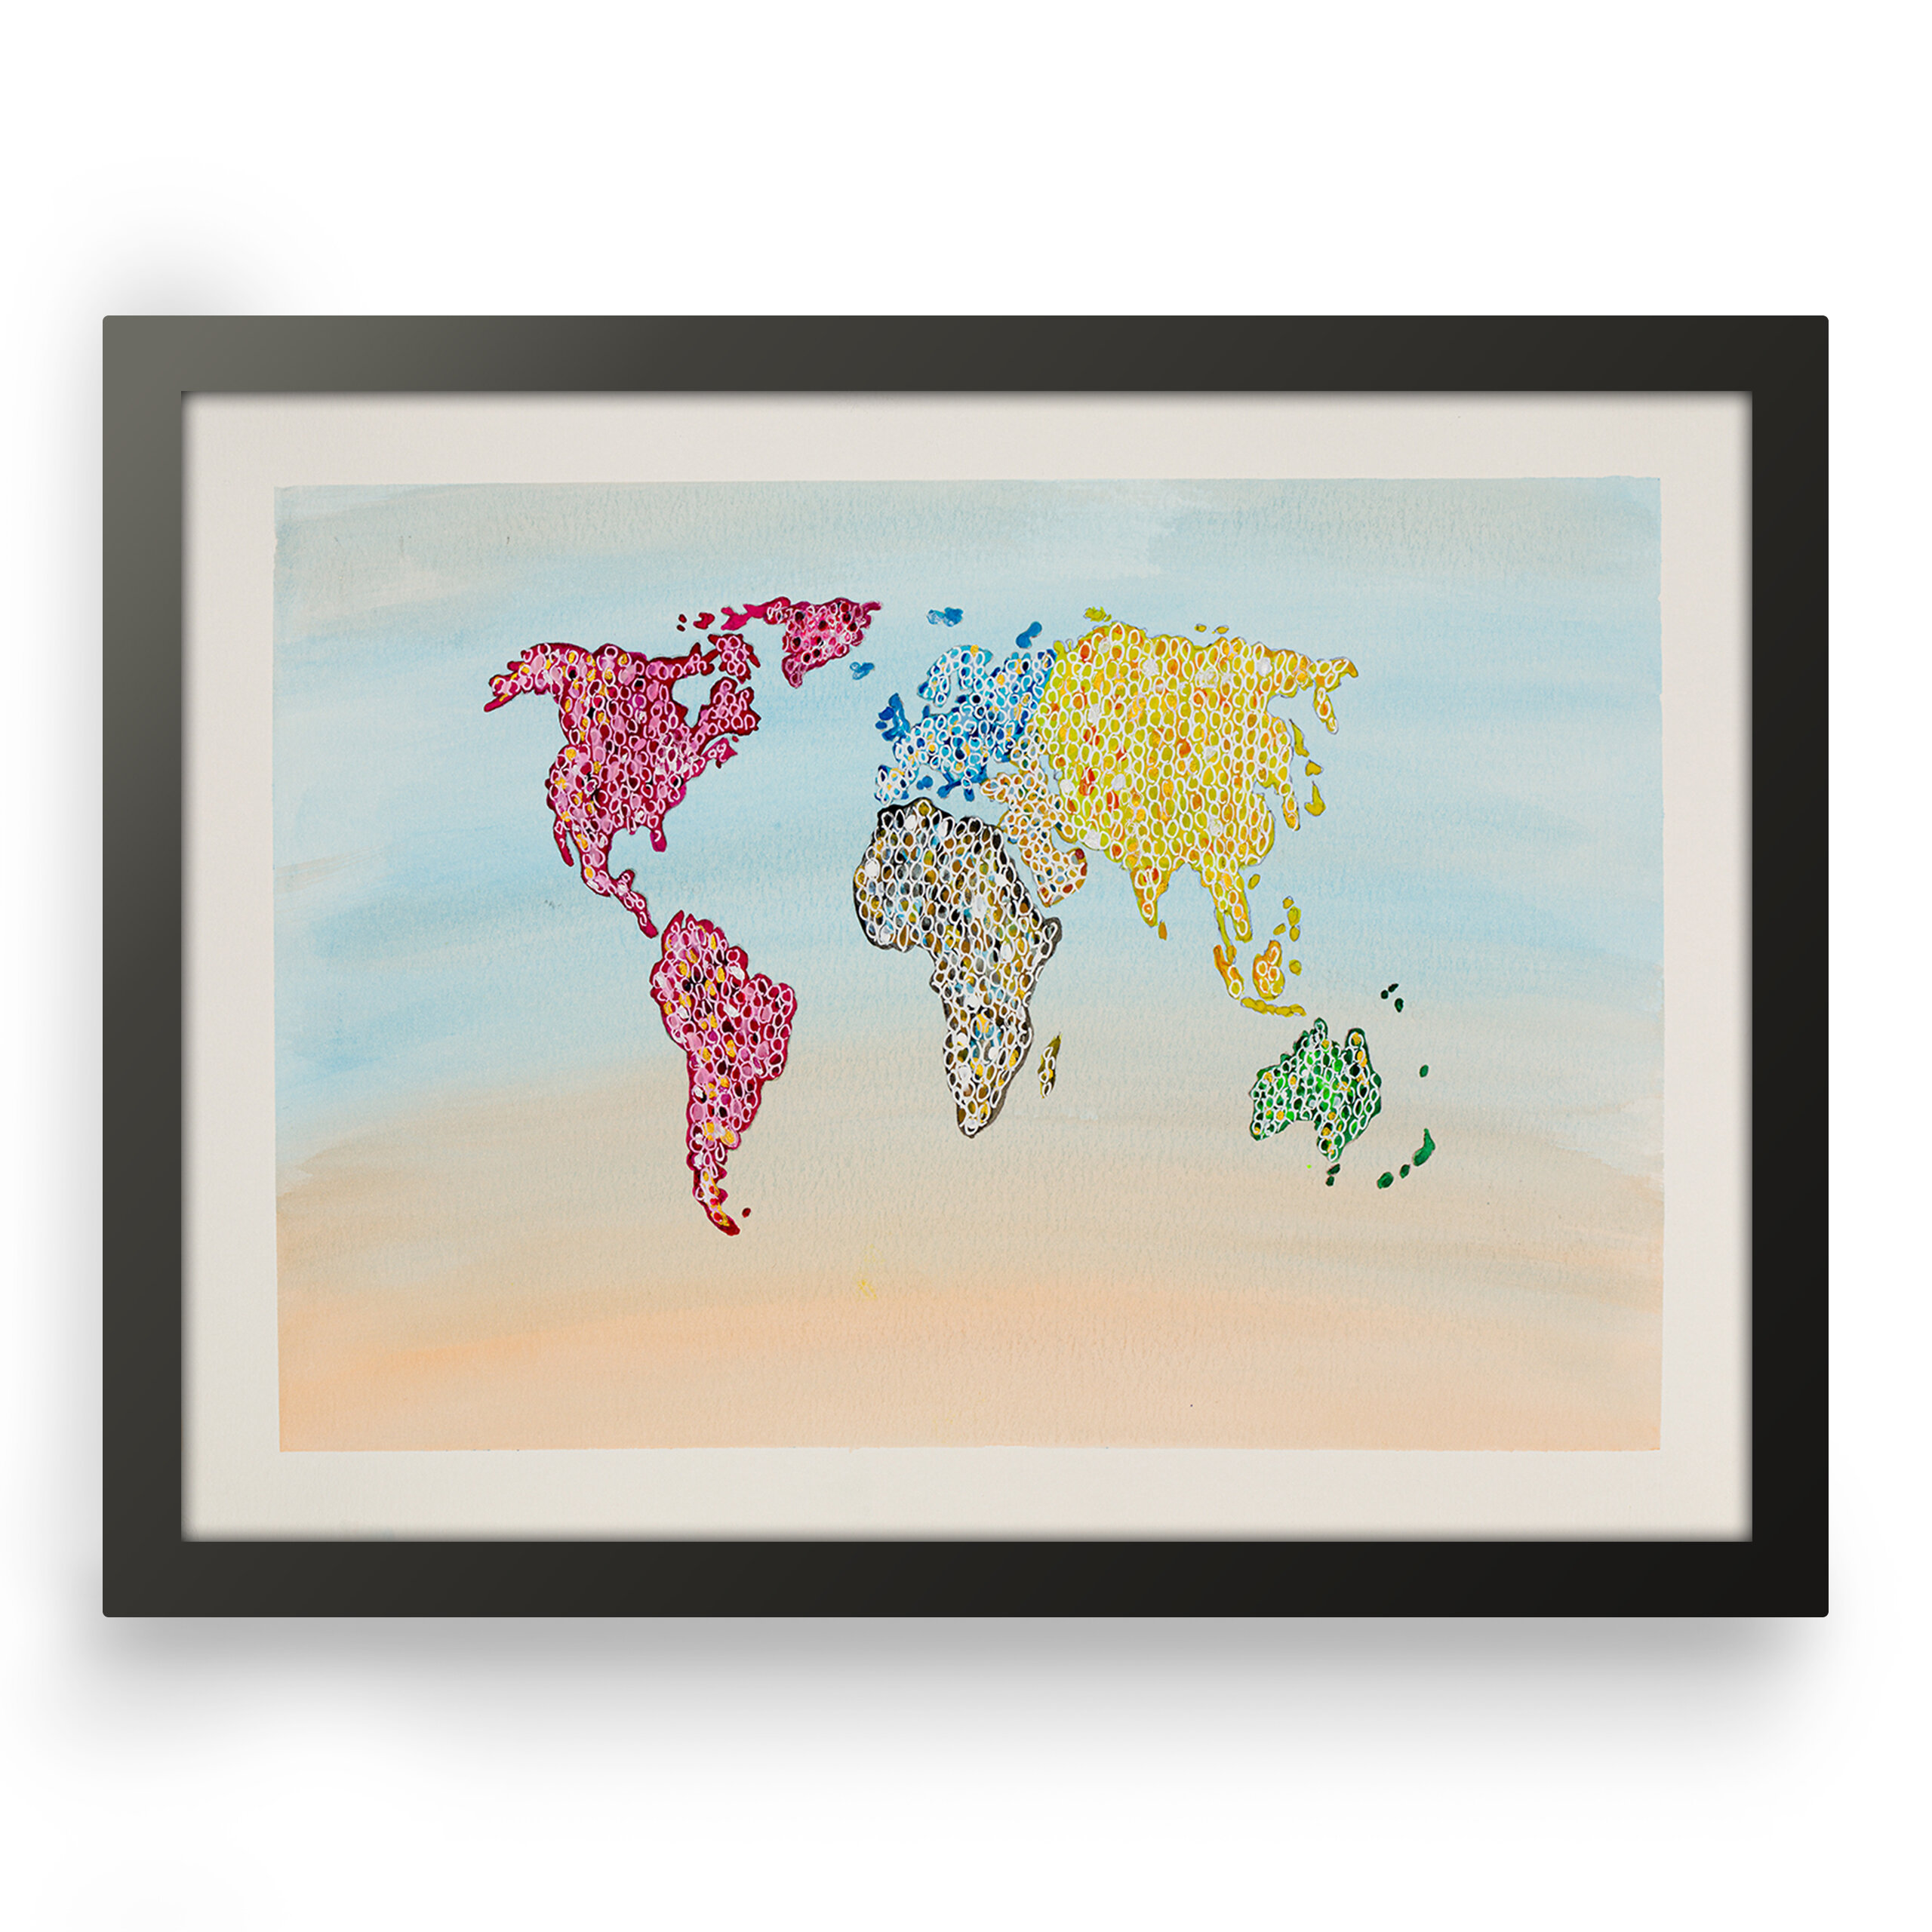 Abstract art world map, Front view